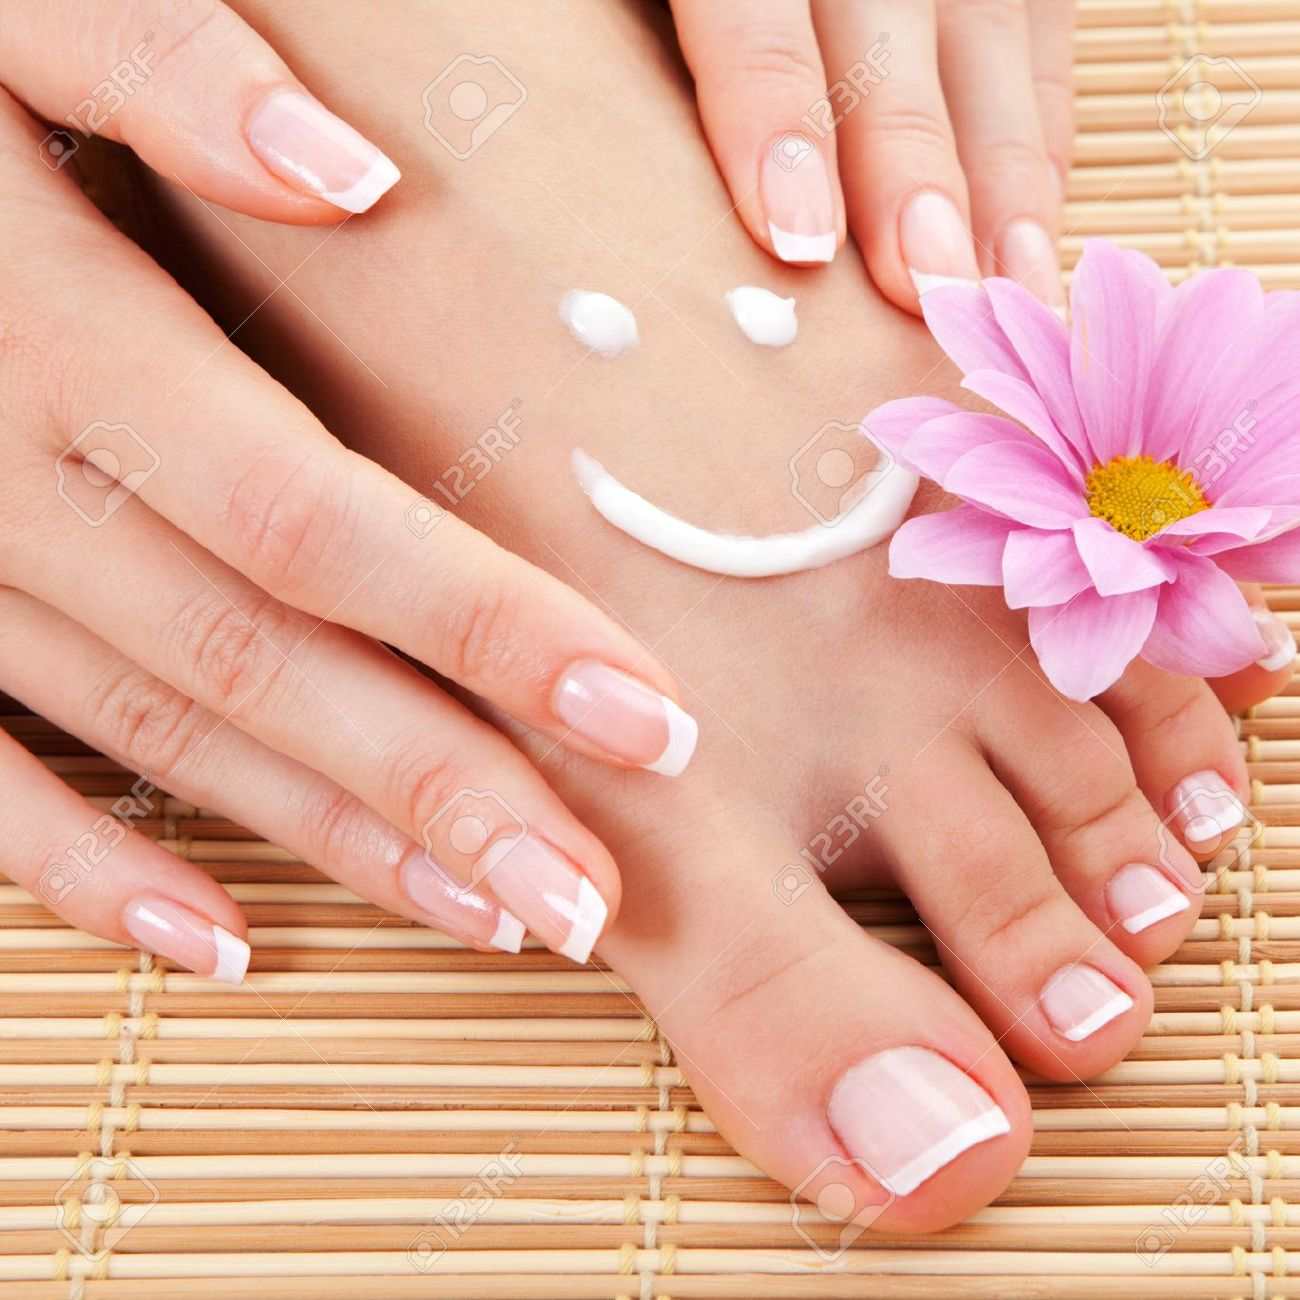 https://previews.123rf.com/images/suravid/suravid1211/suravid121100083/16167362-care-for-beautiful-woman-legs-Stock-Photo-feet-pedicure-manicure.jpg